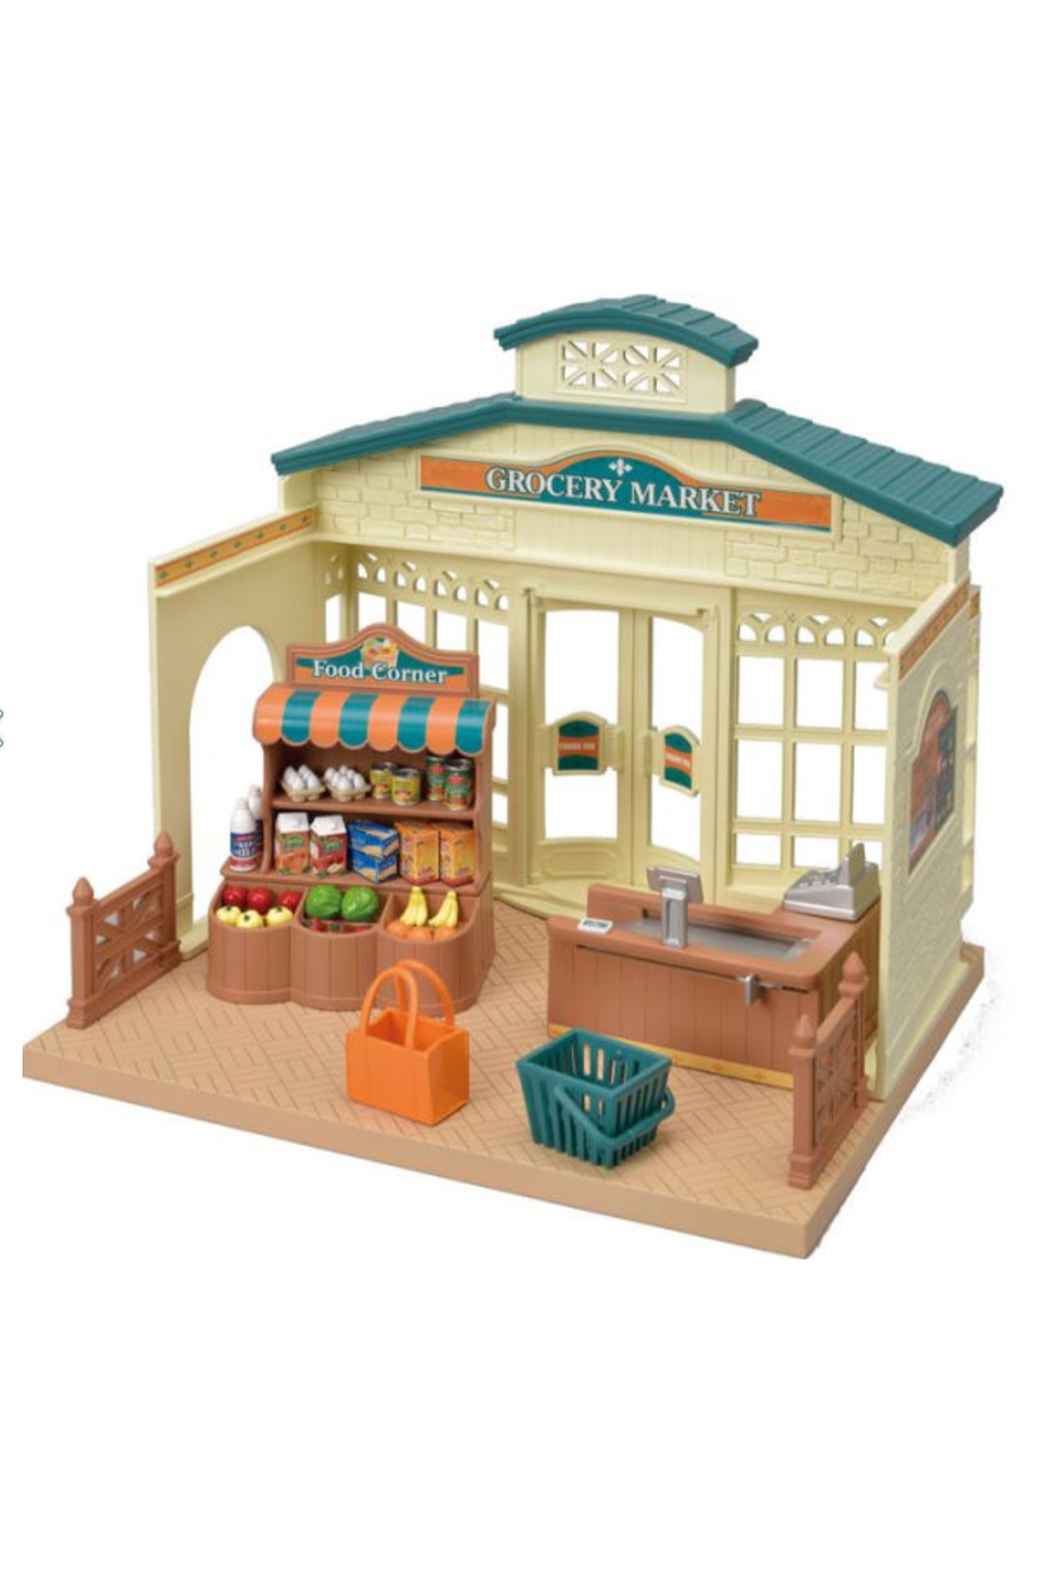 Calico Critters Grocery Market - Main Image